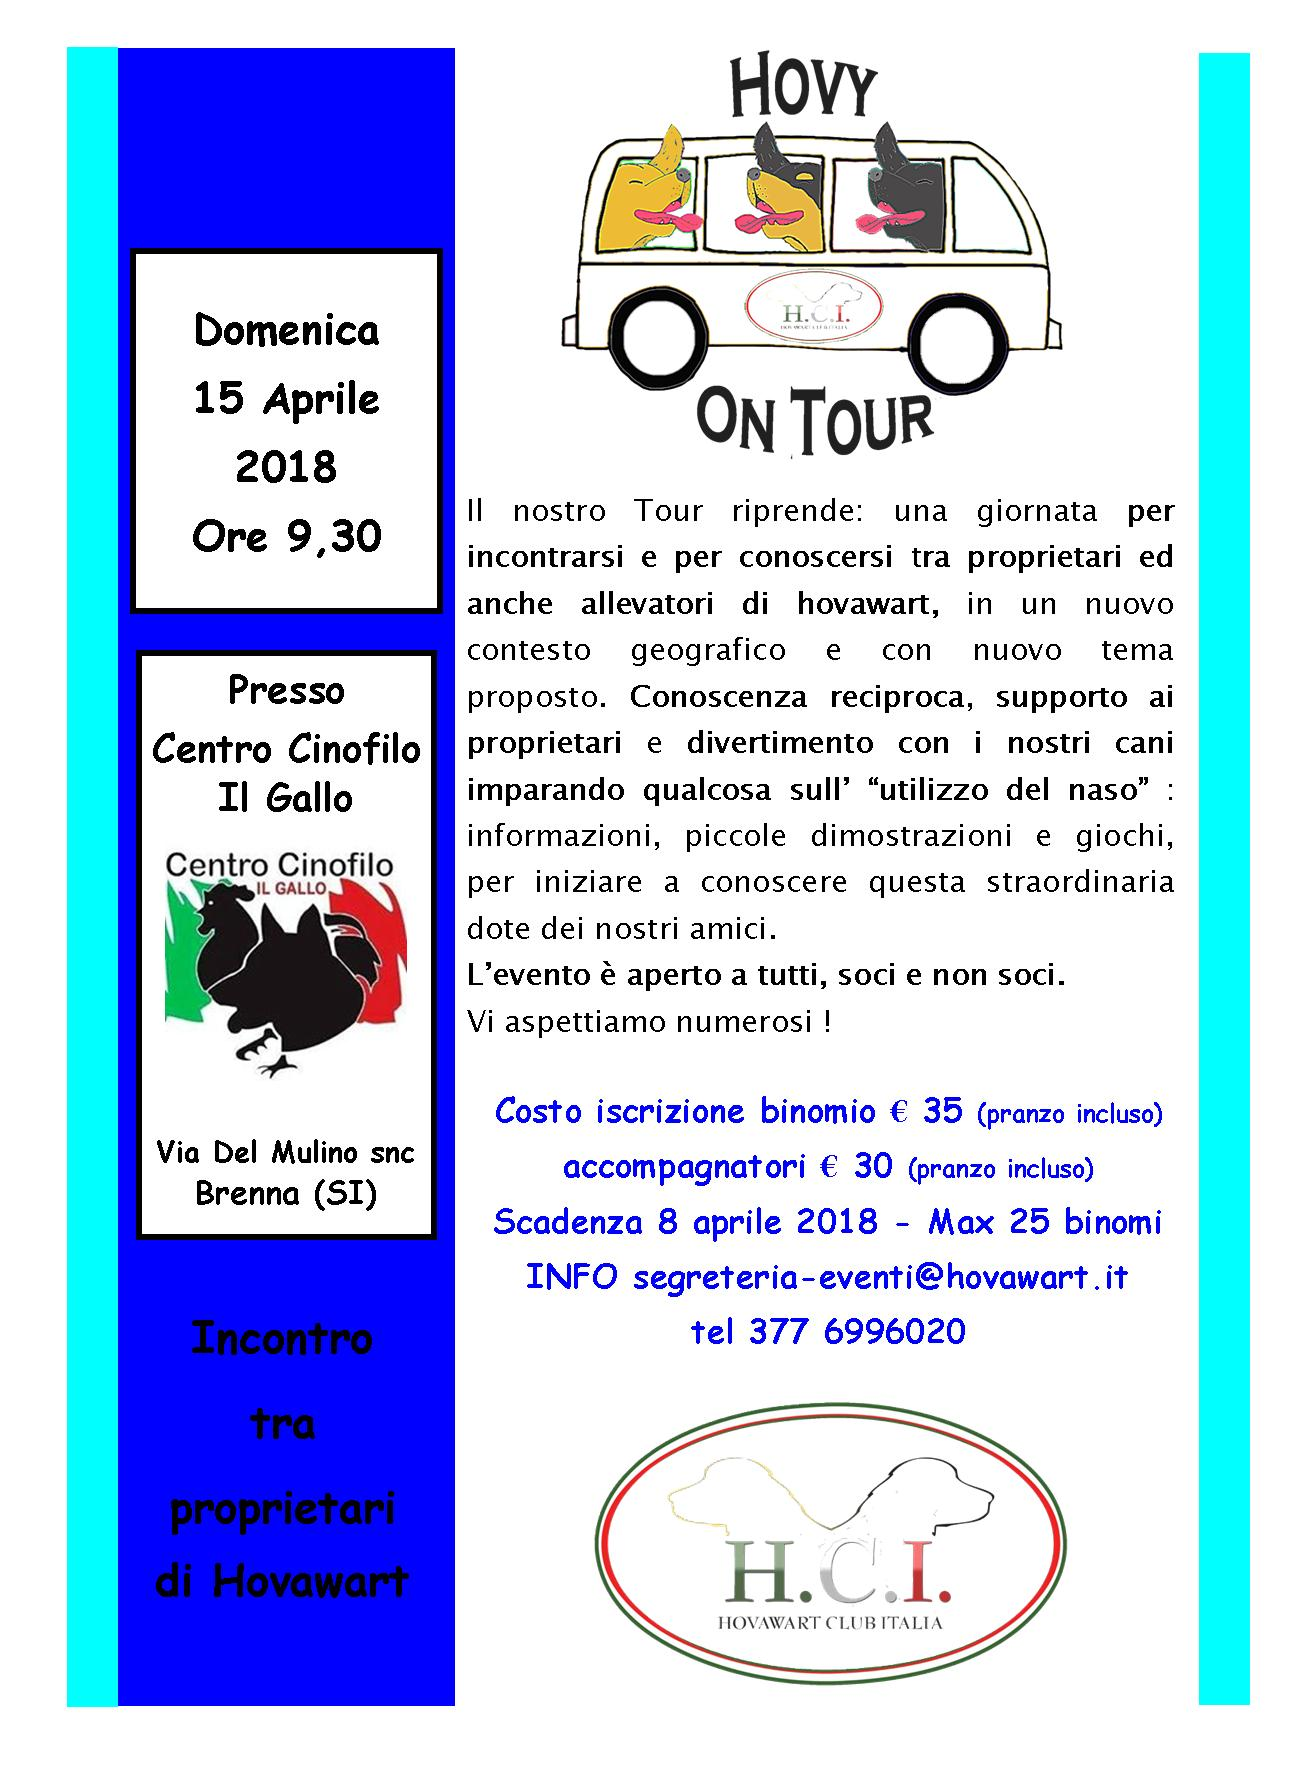 hovy-on-tour-toscana